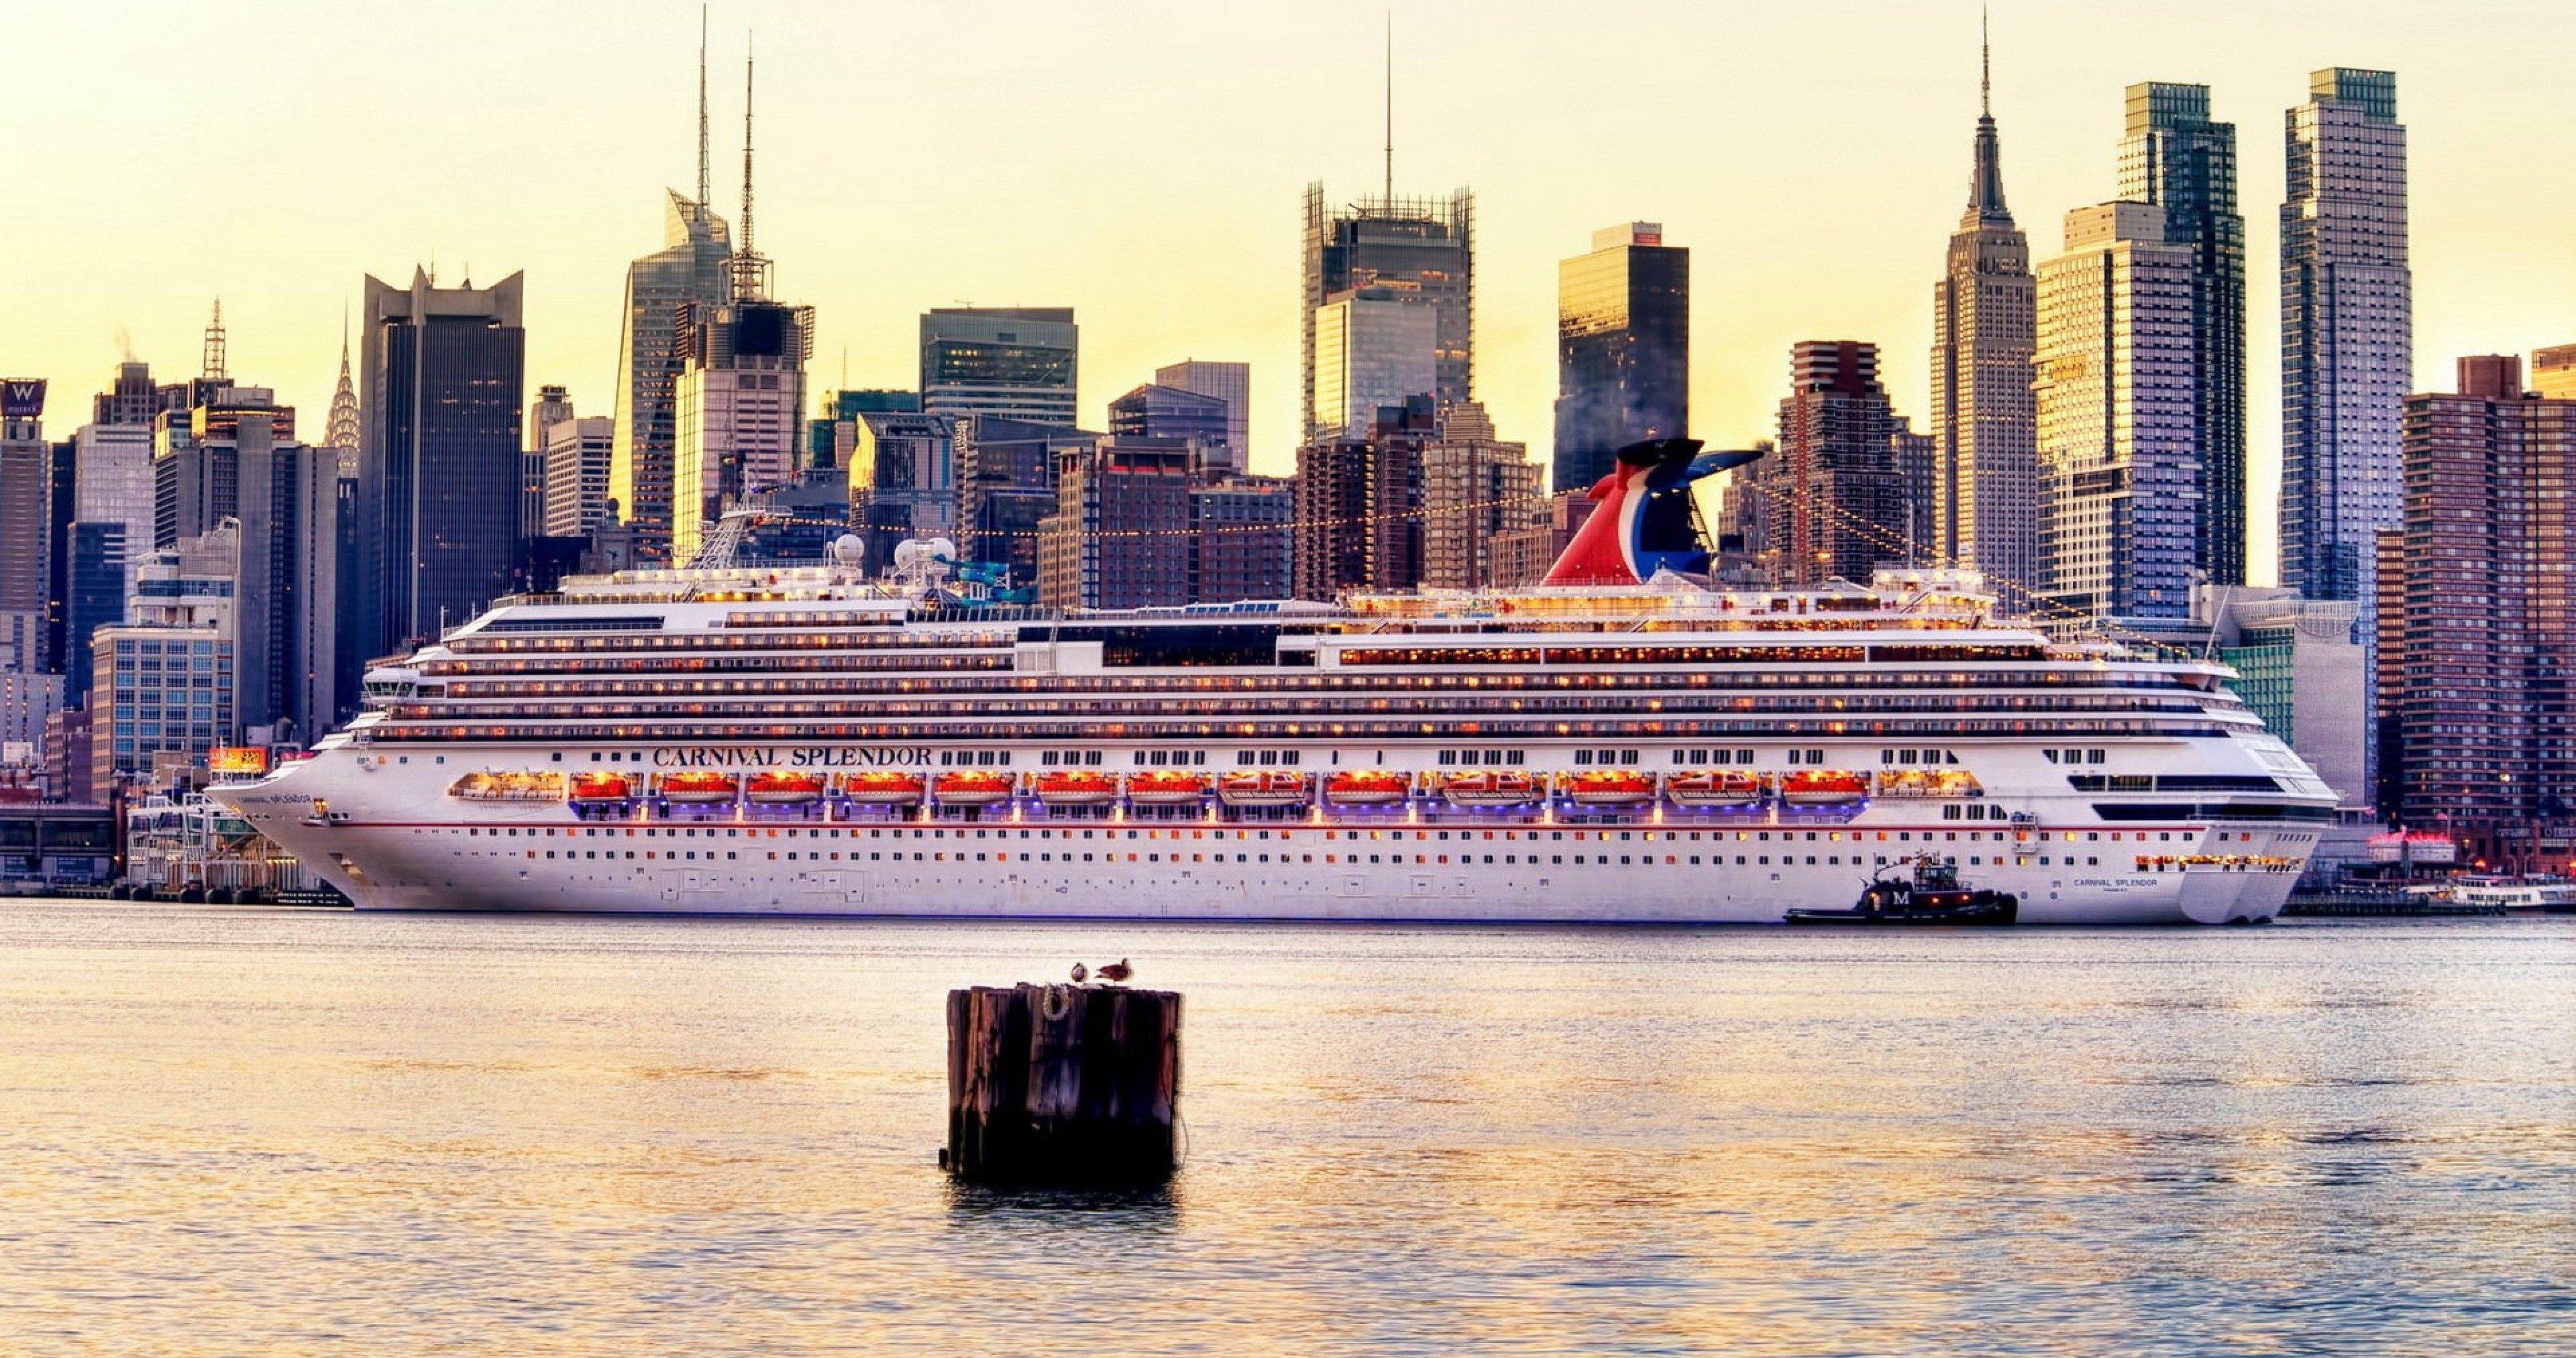 United States New Jersey Edgewater K Ultra Hd Wallpaper - Cruise ships from new jersey